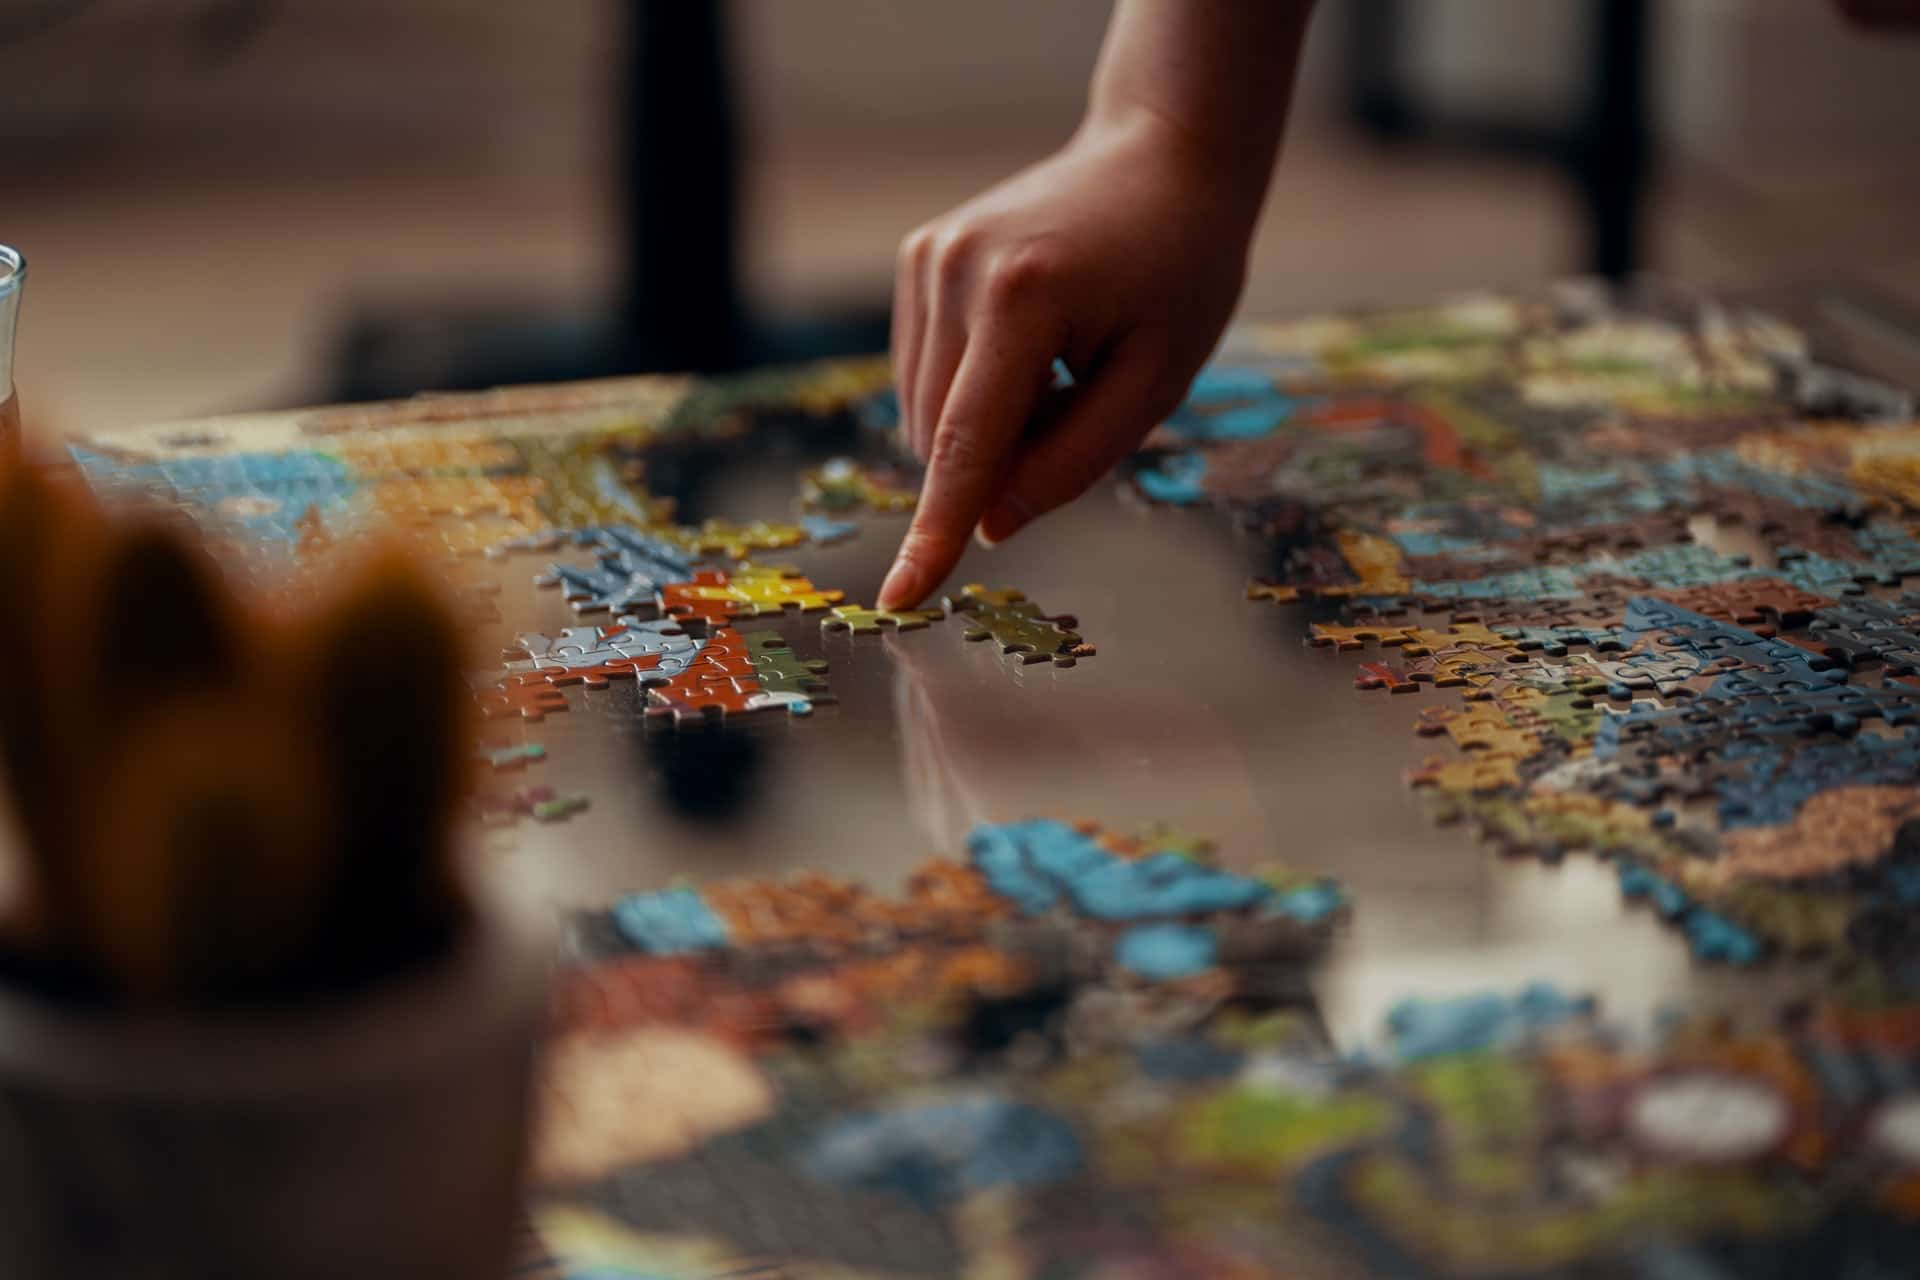 7 Ways to Diversify Your Hobbies and Make Life Exciting